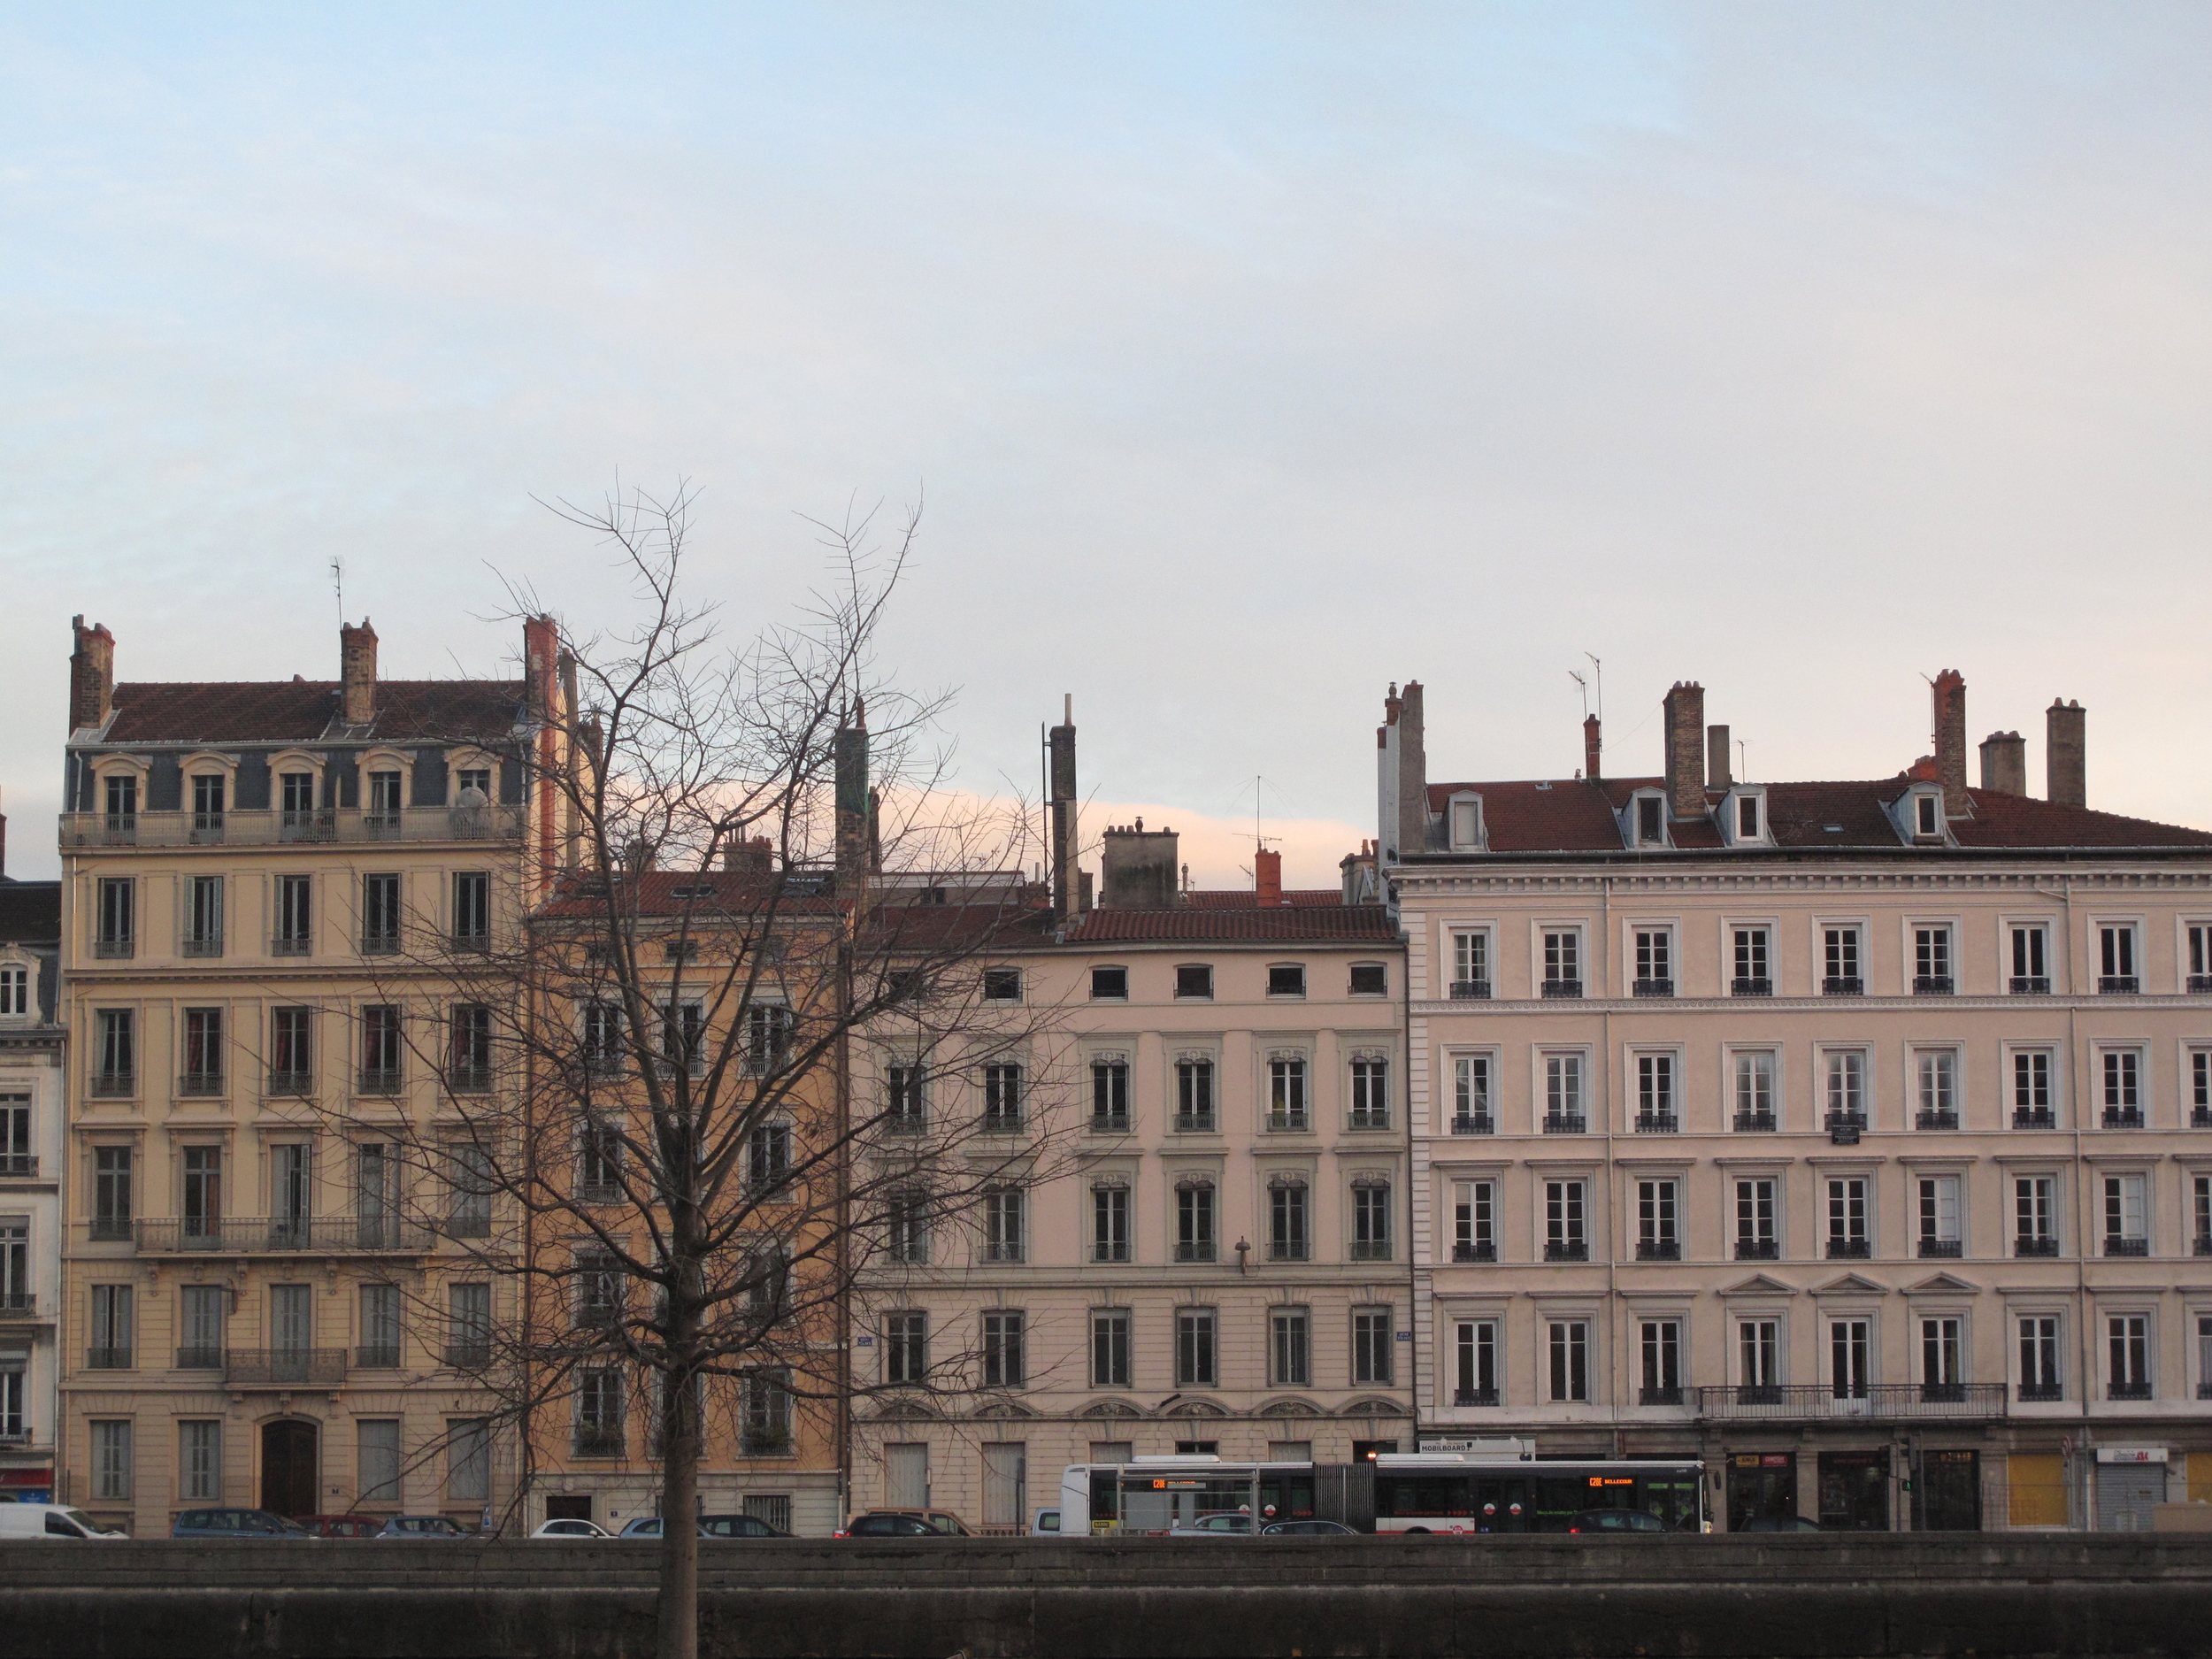 Lyon houses by the river, France